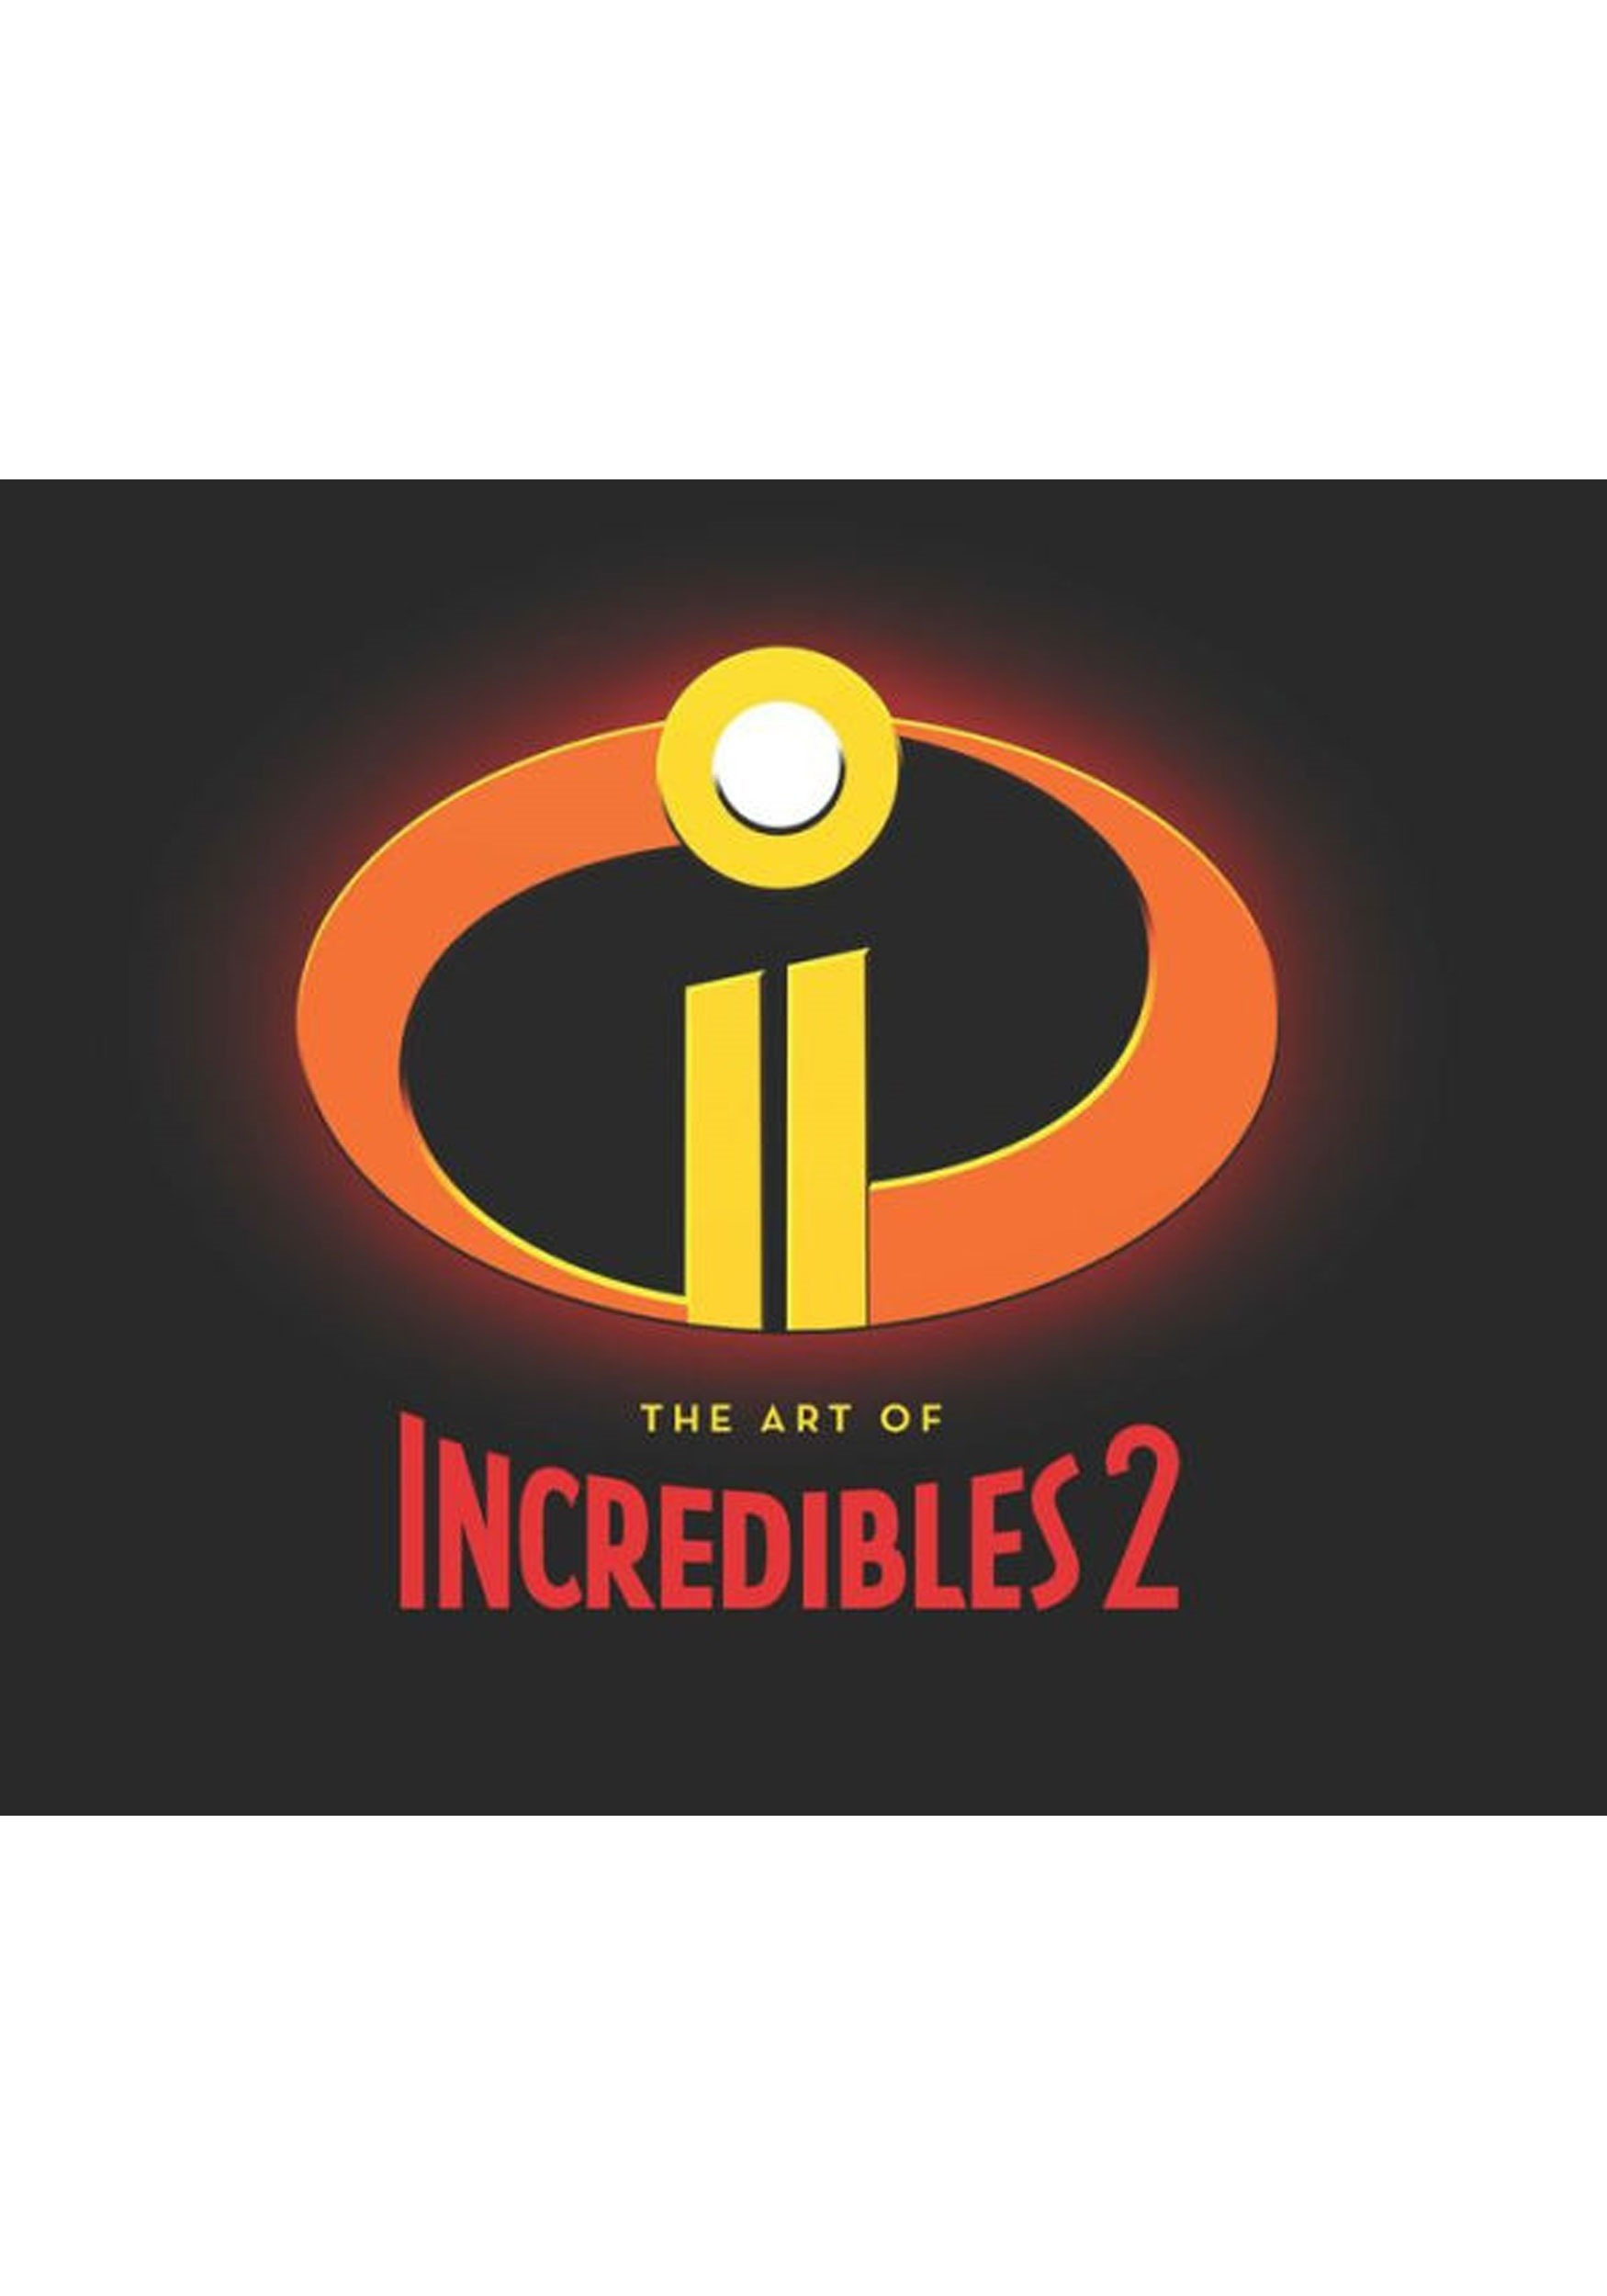 The Art of Incredibles 2 Hardcover Book